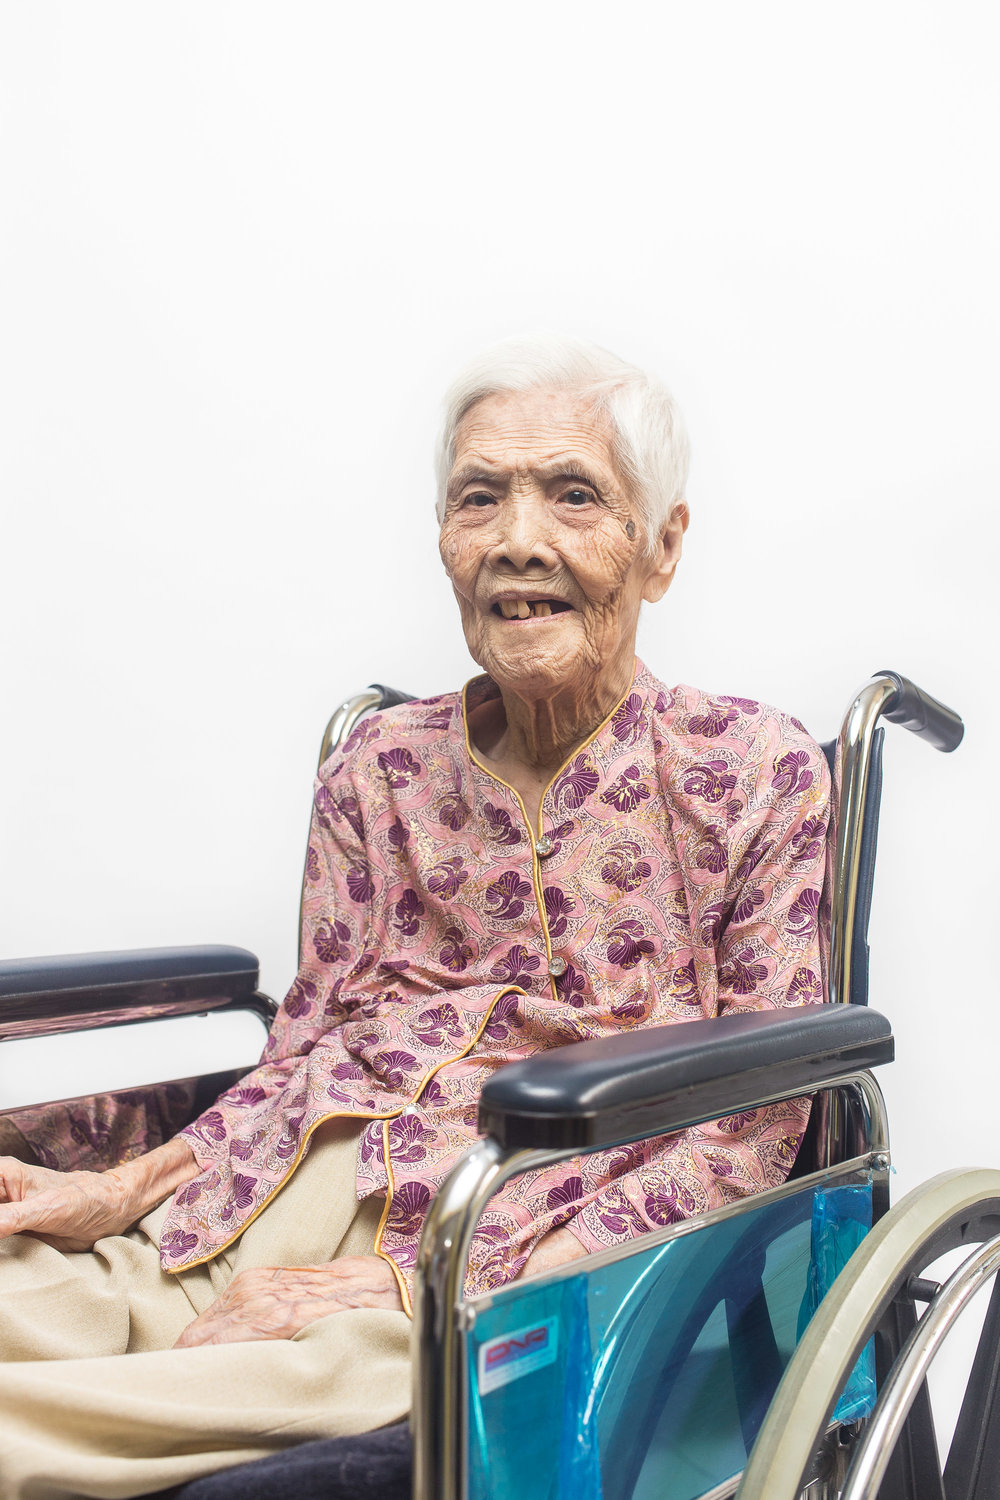 singapore-photographer-centenarians-dukenus-care-zz-2-2.jpg